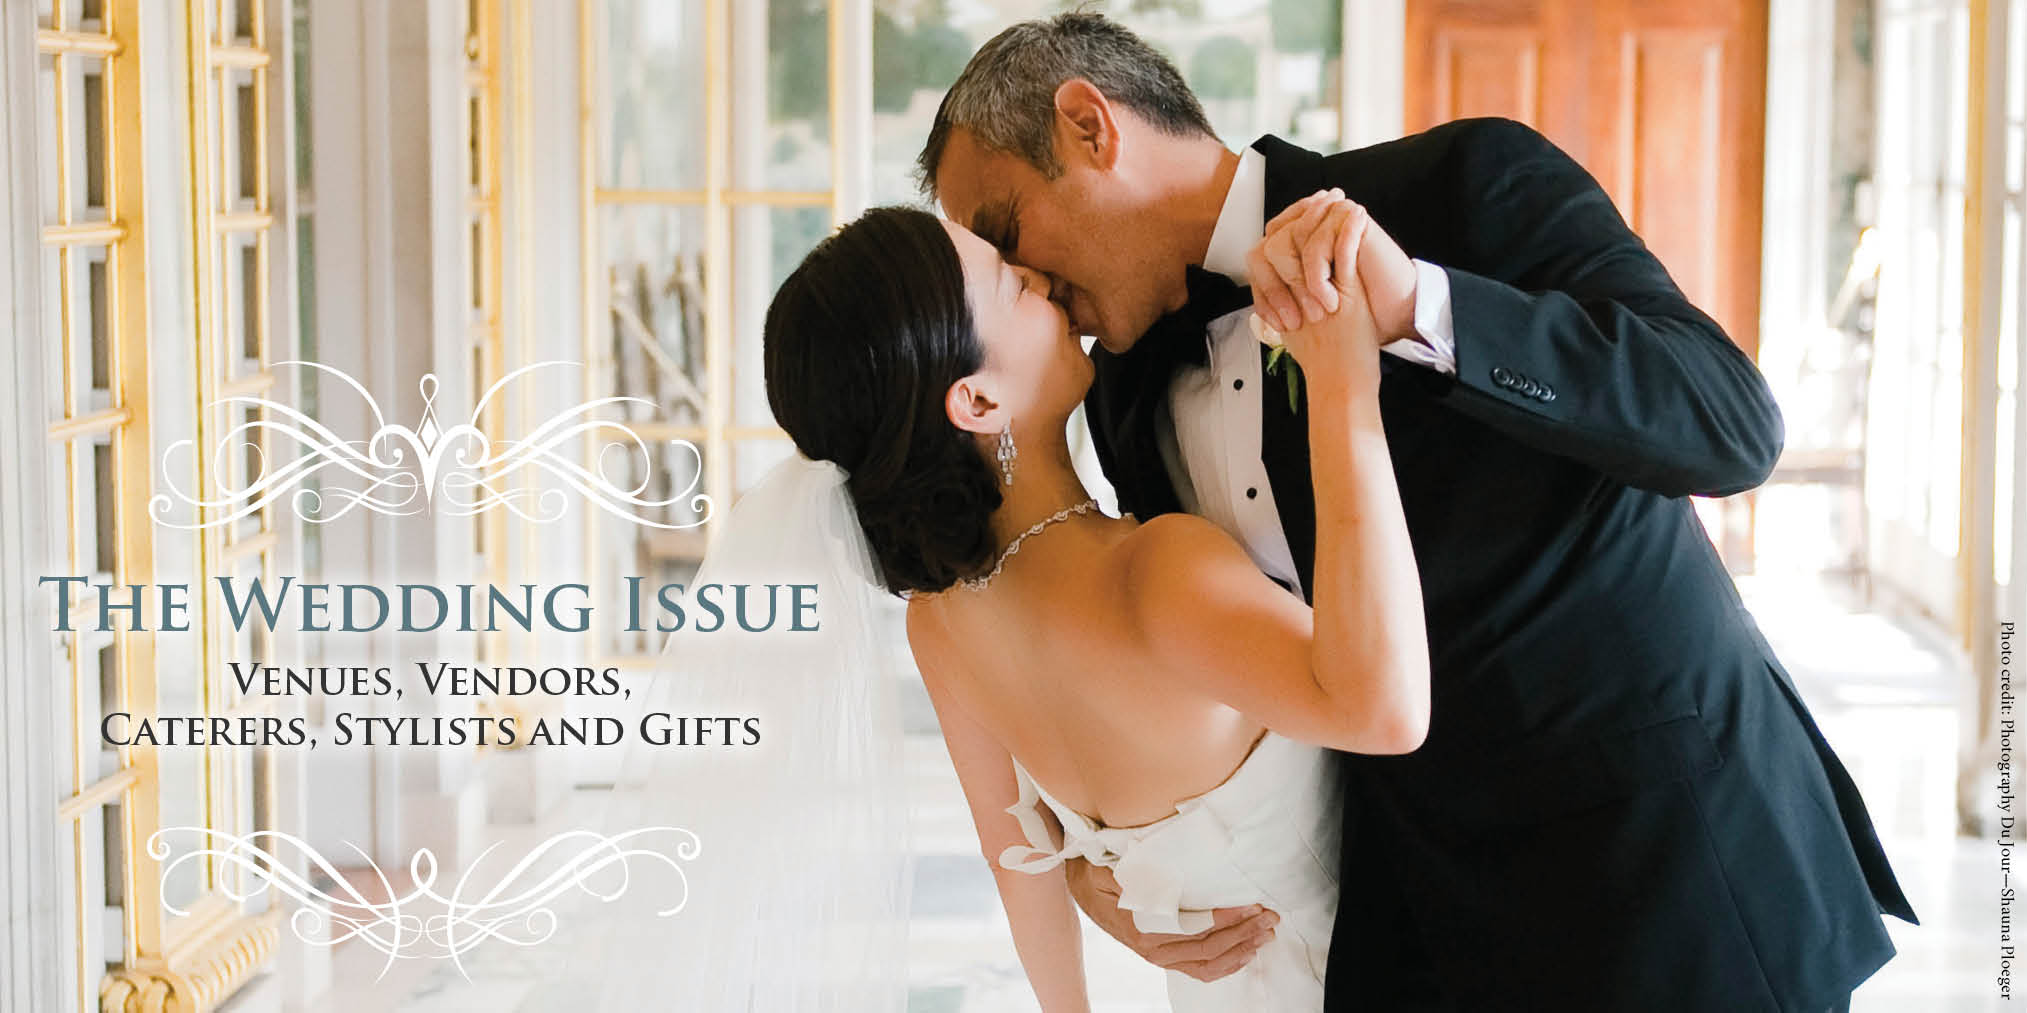 The Wedding Issue - Venues, Vendors, Caterers, Stylists and Gifts